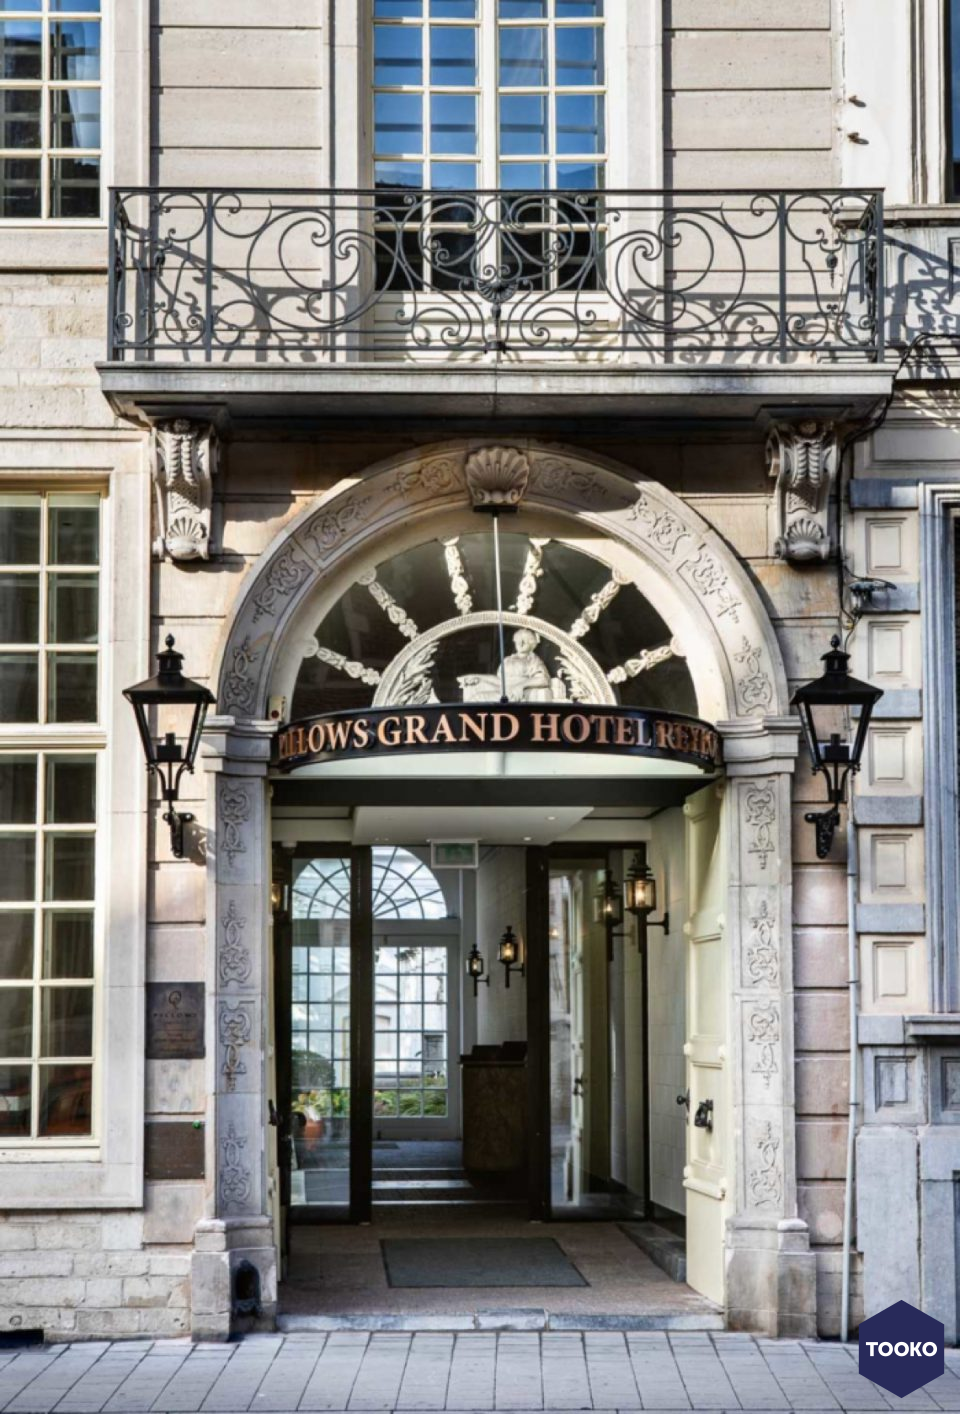 NEWKANTOOR - Pillows Grand Hotel Reylof Gent